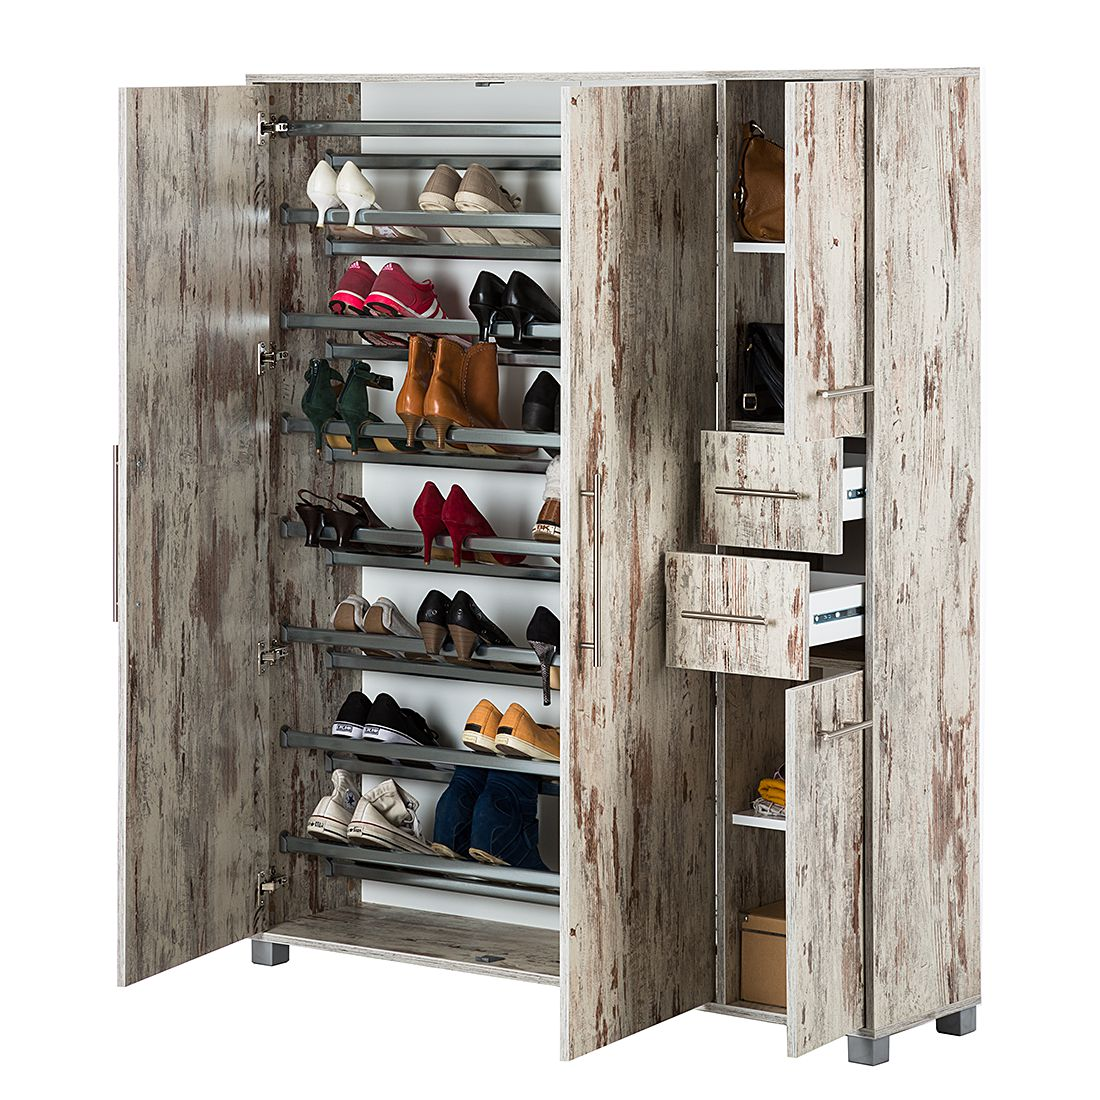 schuhschrank goliath eiche antik dekor schuhkommode schuhkipper schrank kipper ebay. Black Bedroom Furniture Sets. Home Design Ideas